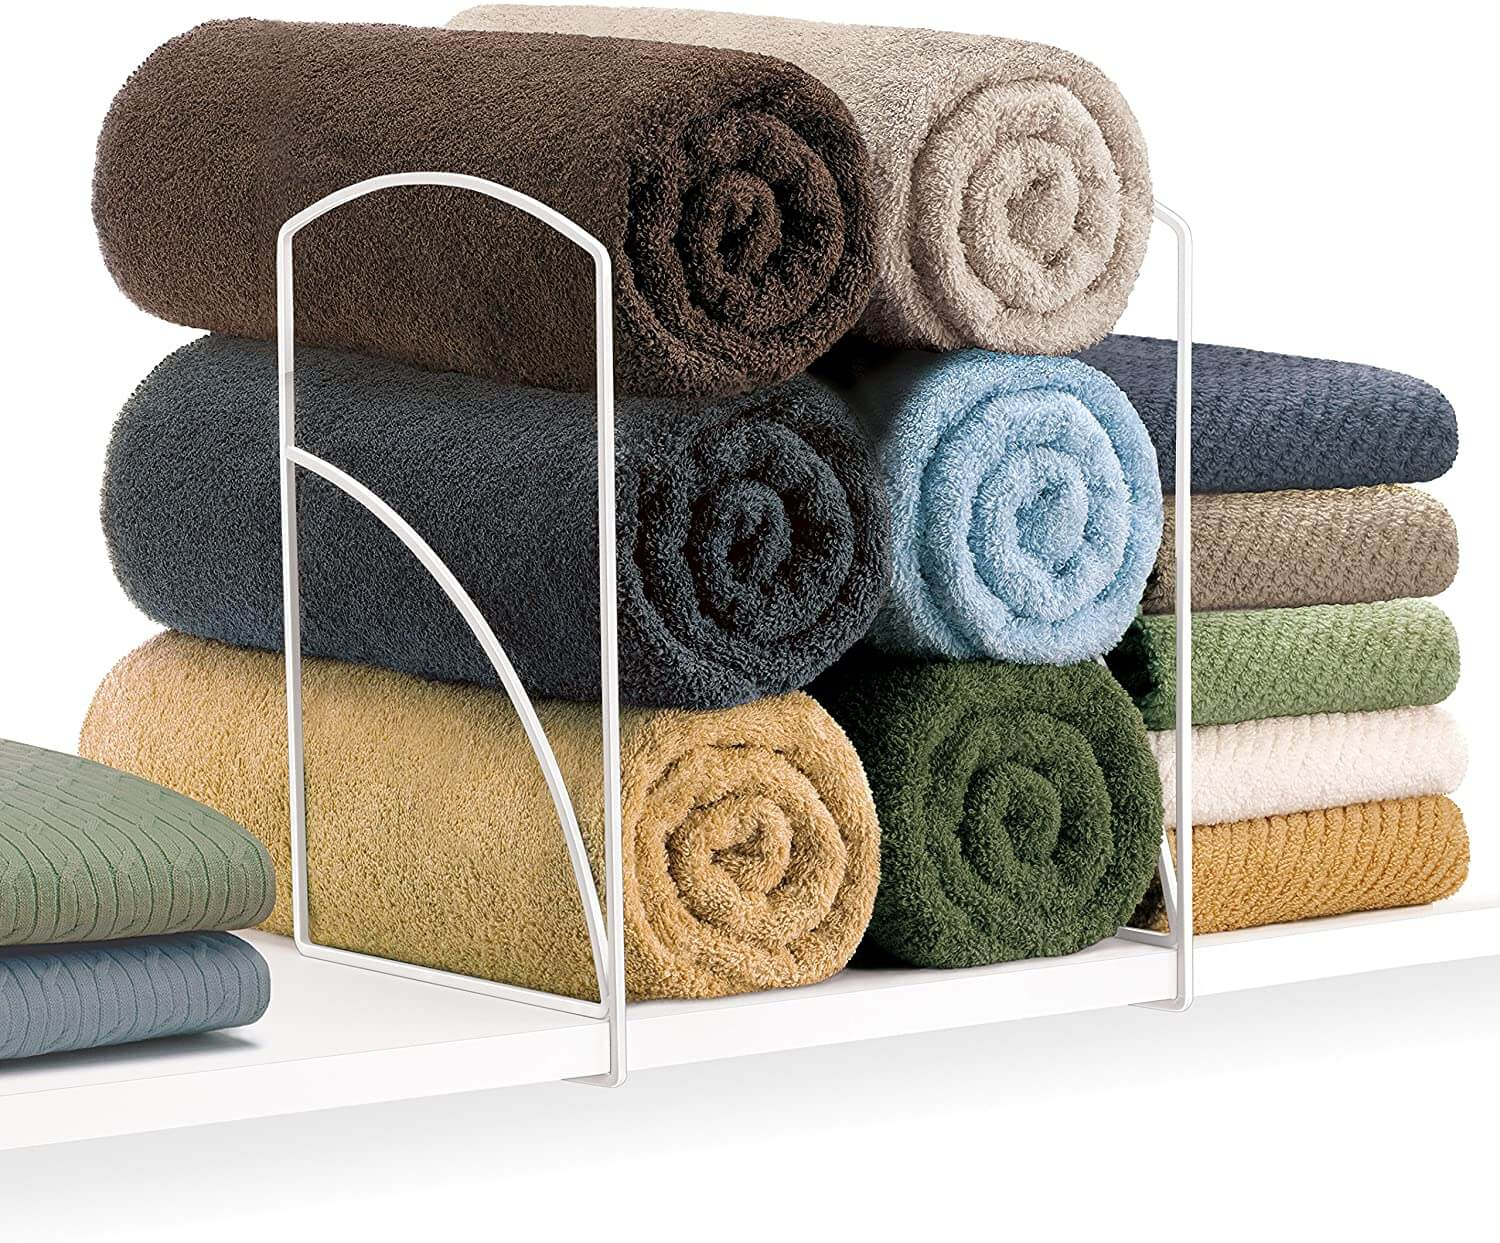 Linen shelf dividers with neat and clean towels